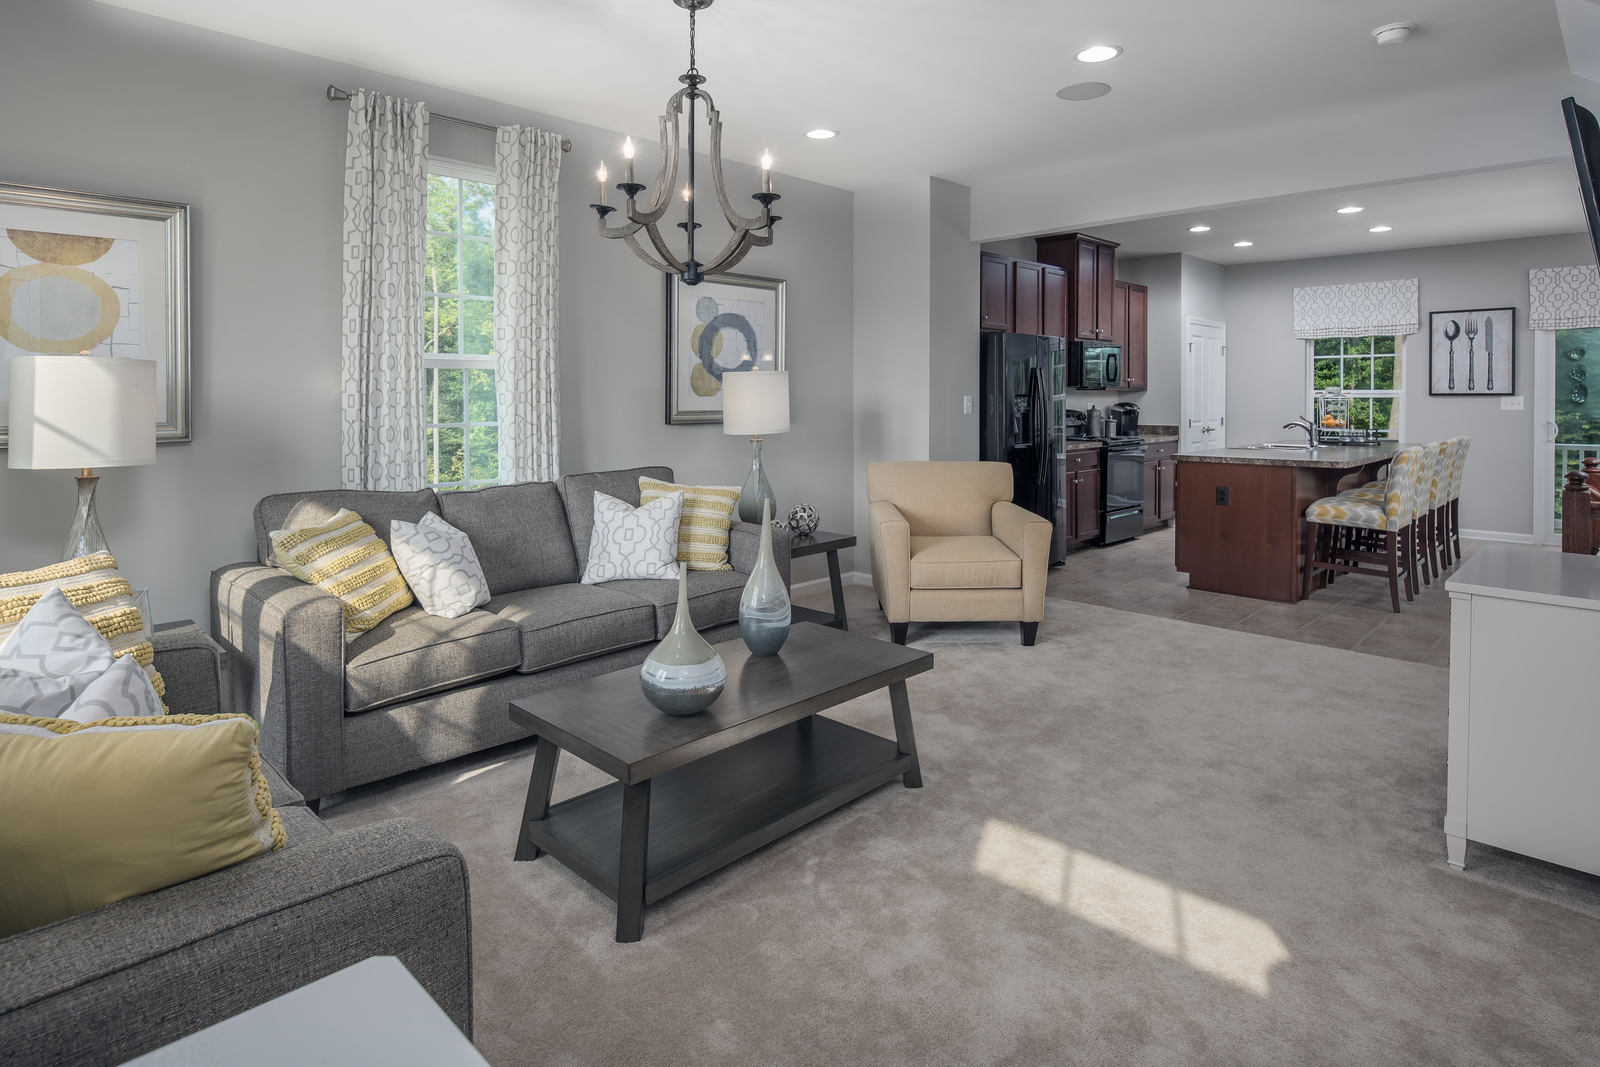 new homes for sale at courthouse commons townhomes in spotsylvania va within the spotsylvania. Black Bedroom Furniture Sets. Home Design Ideas